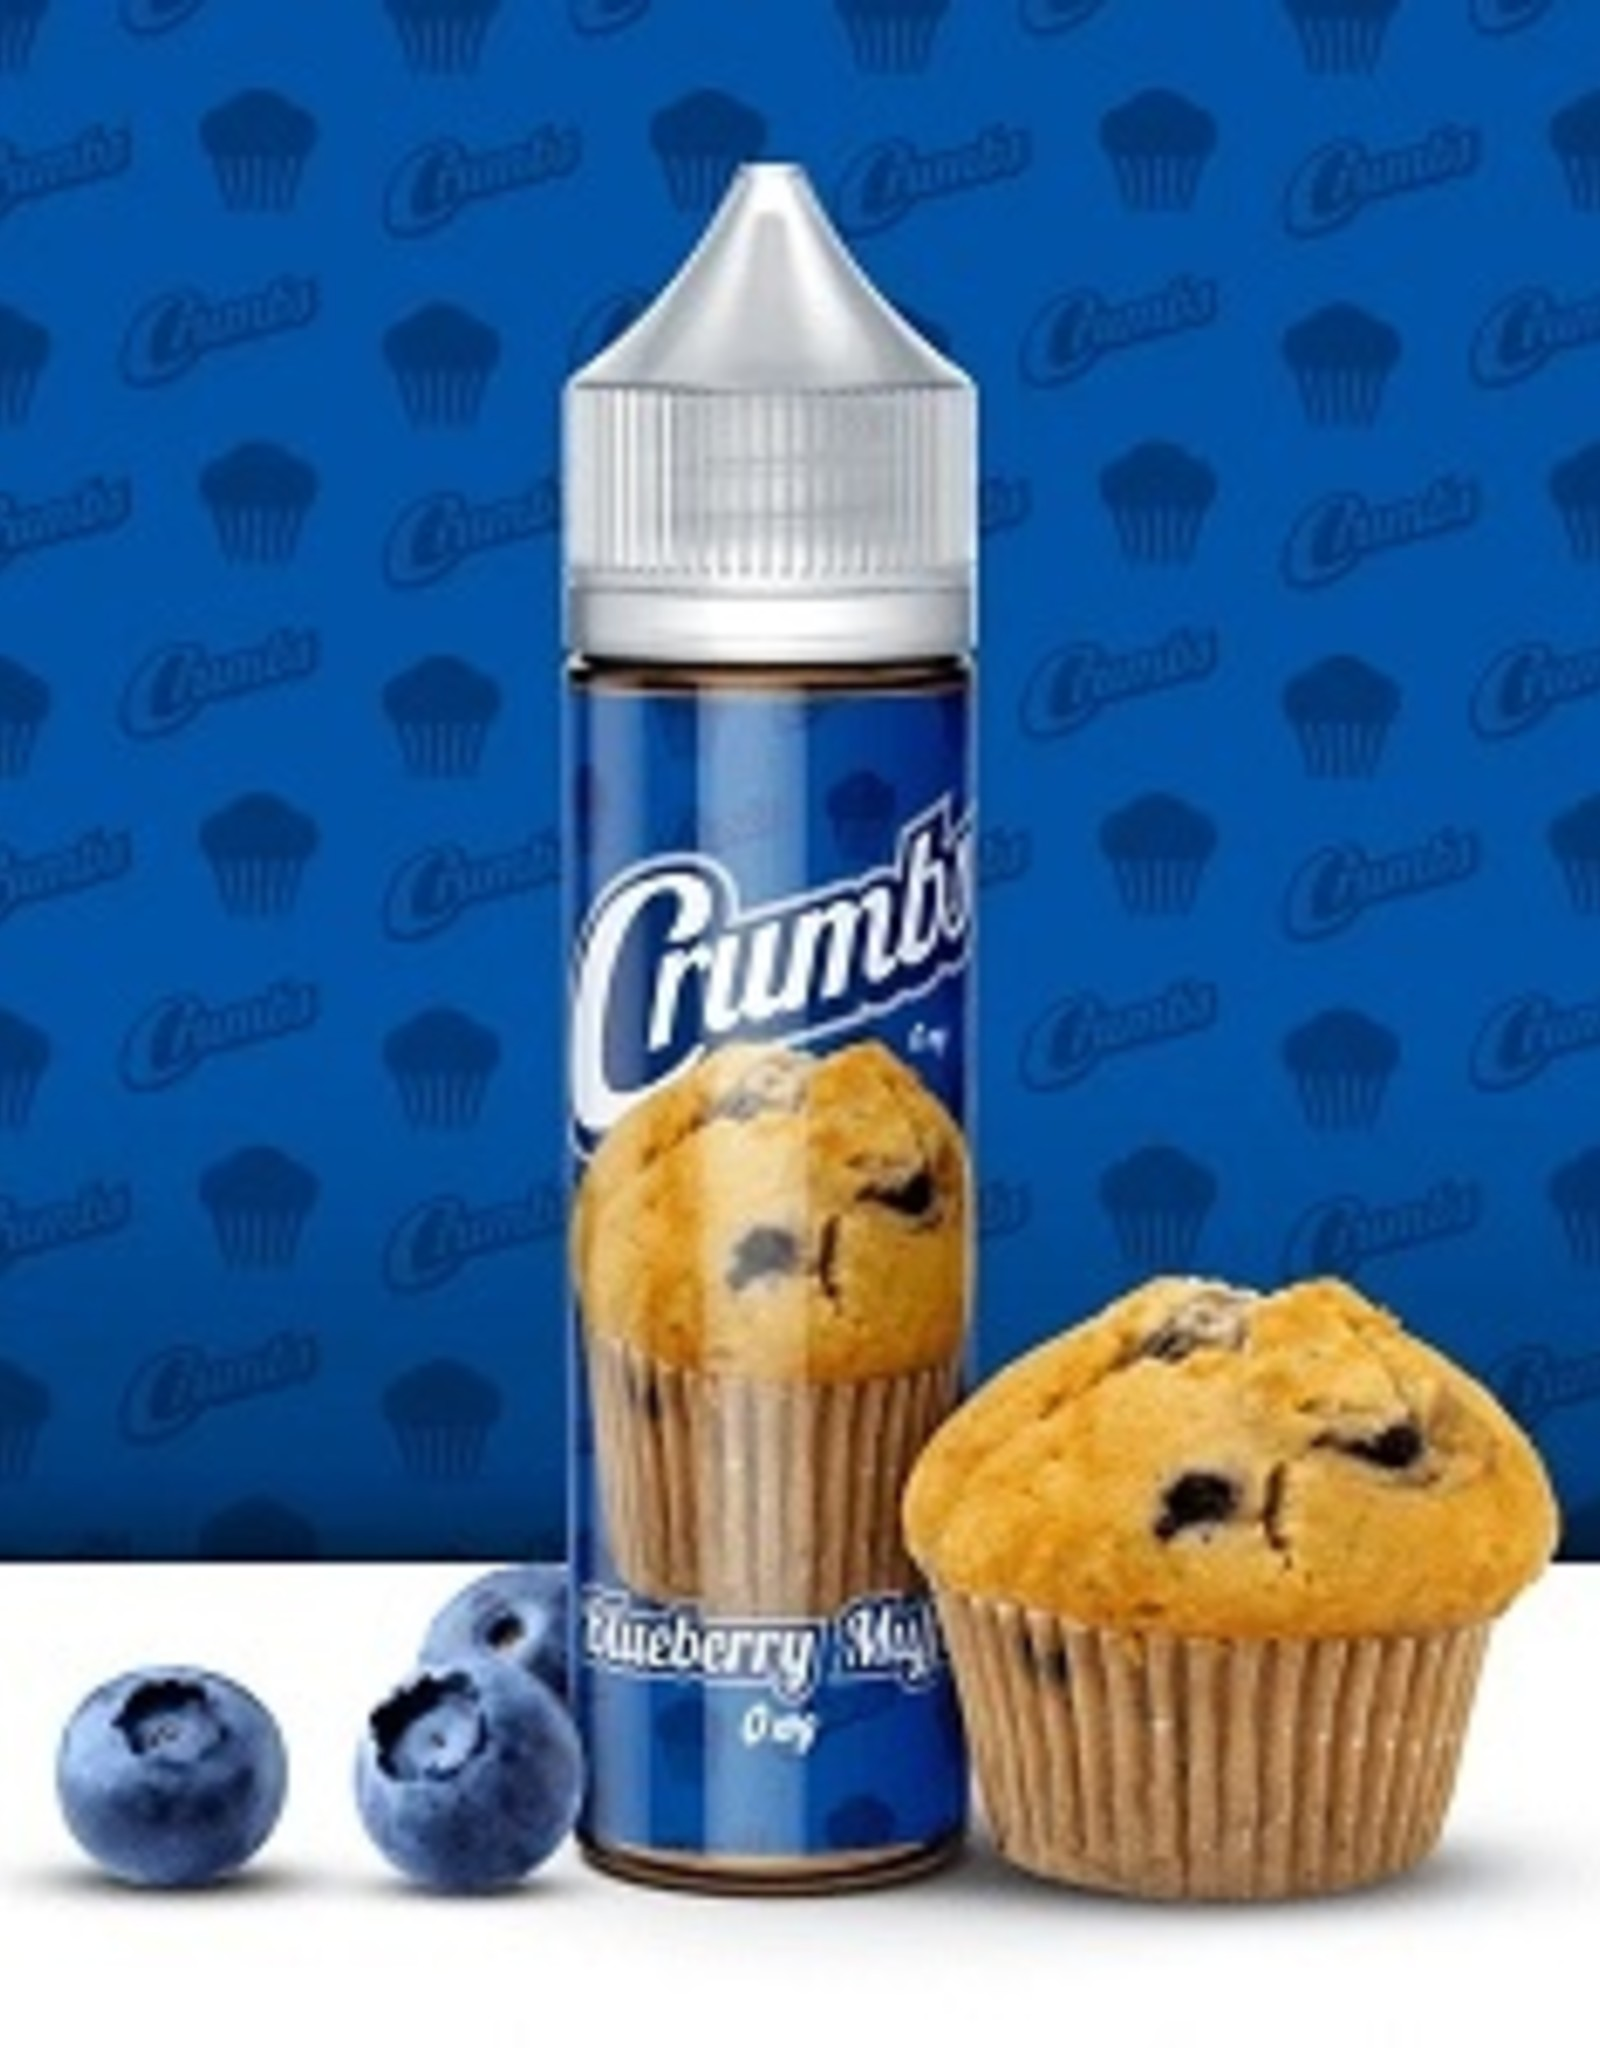 Blueberry Muffin By Crumbs